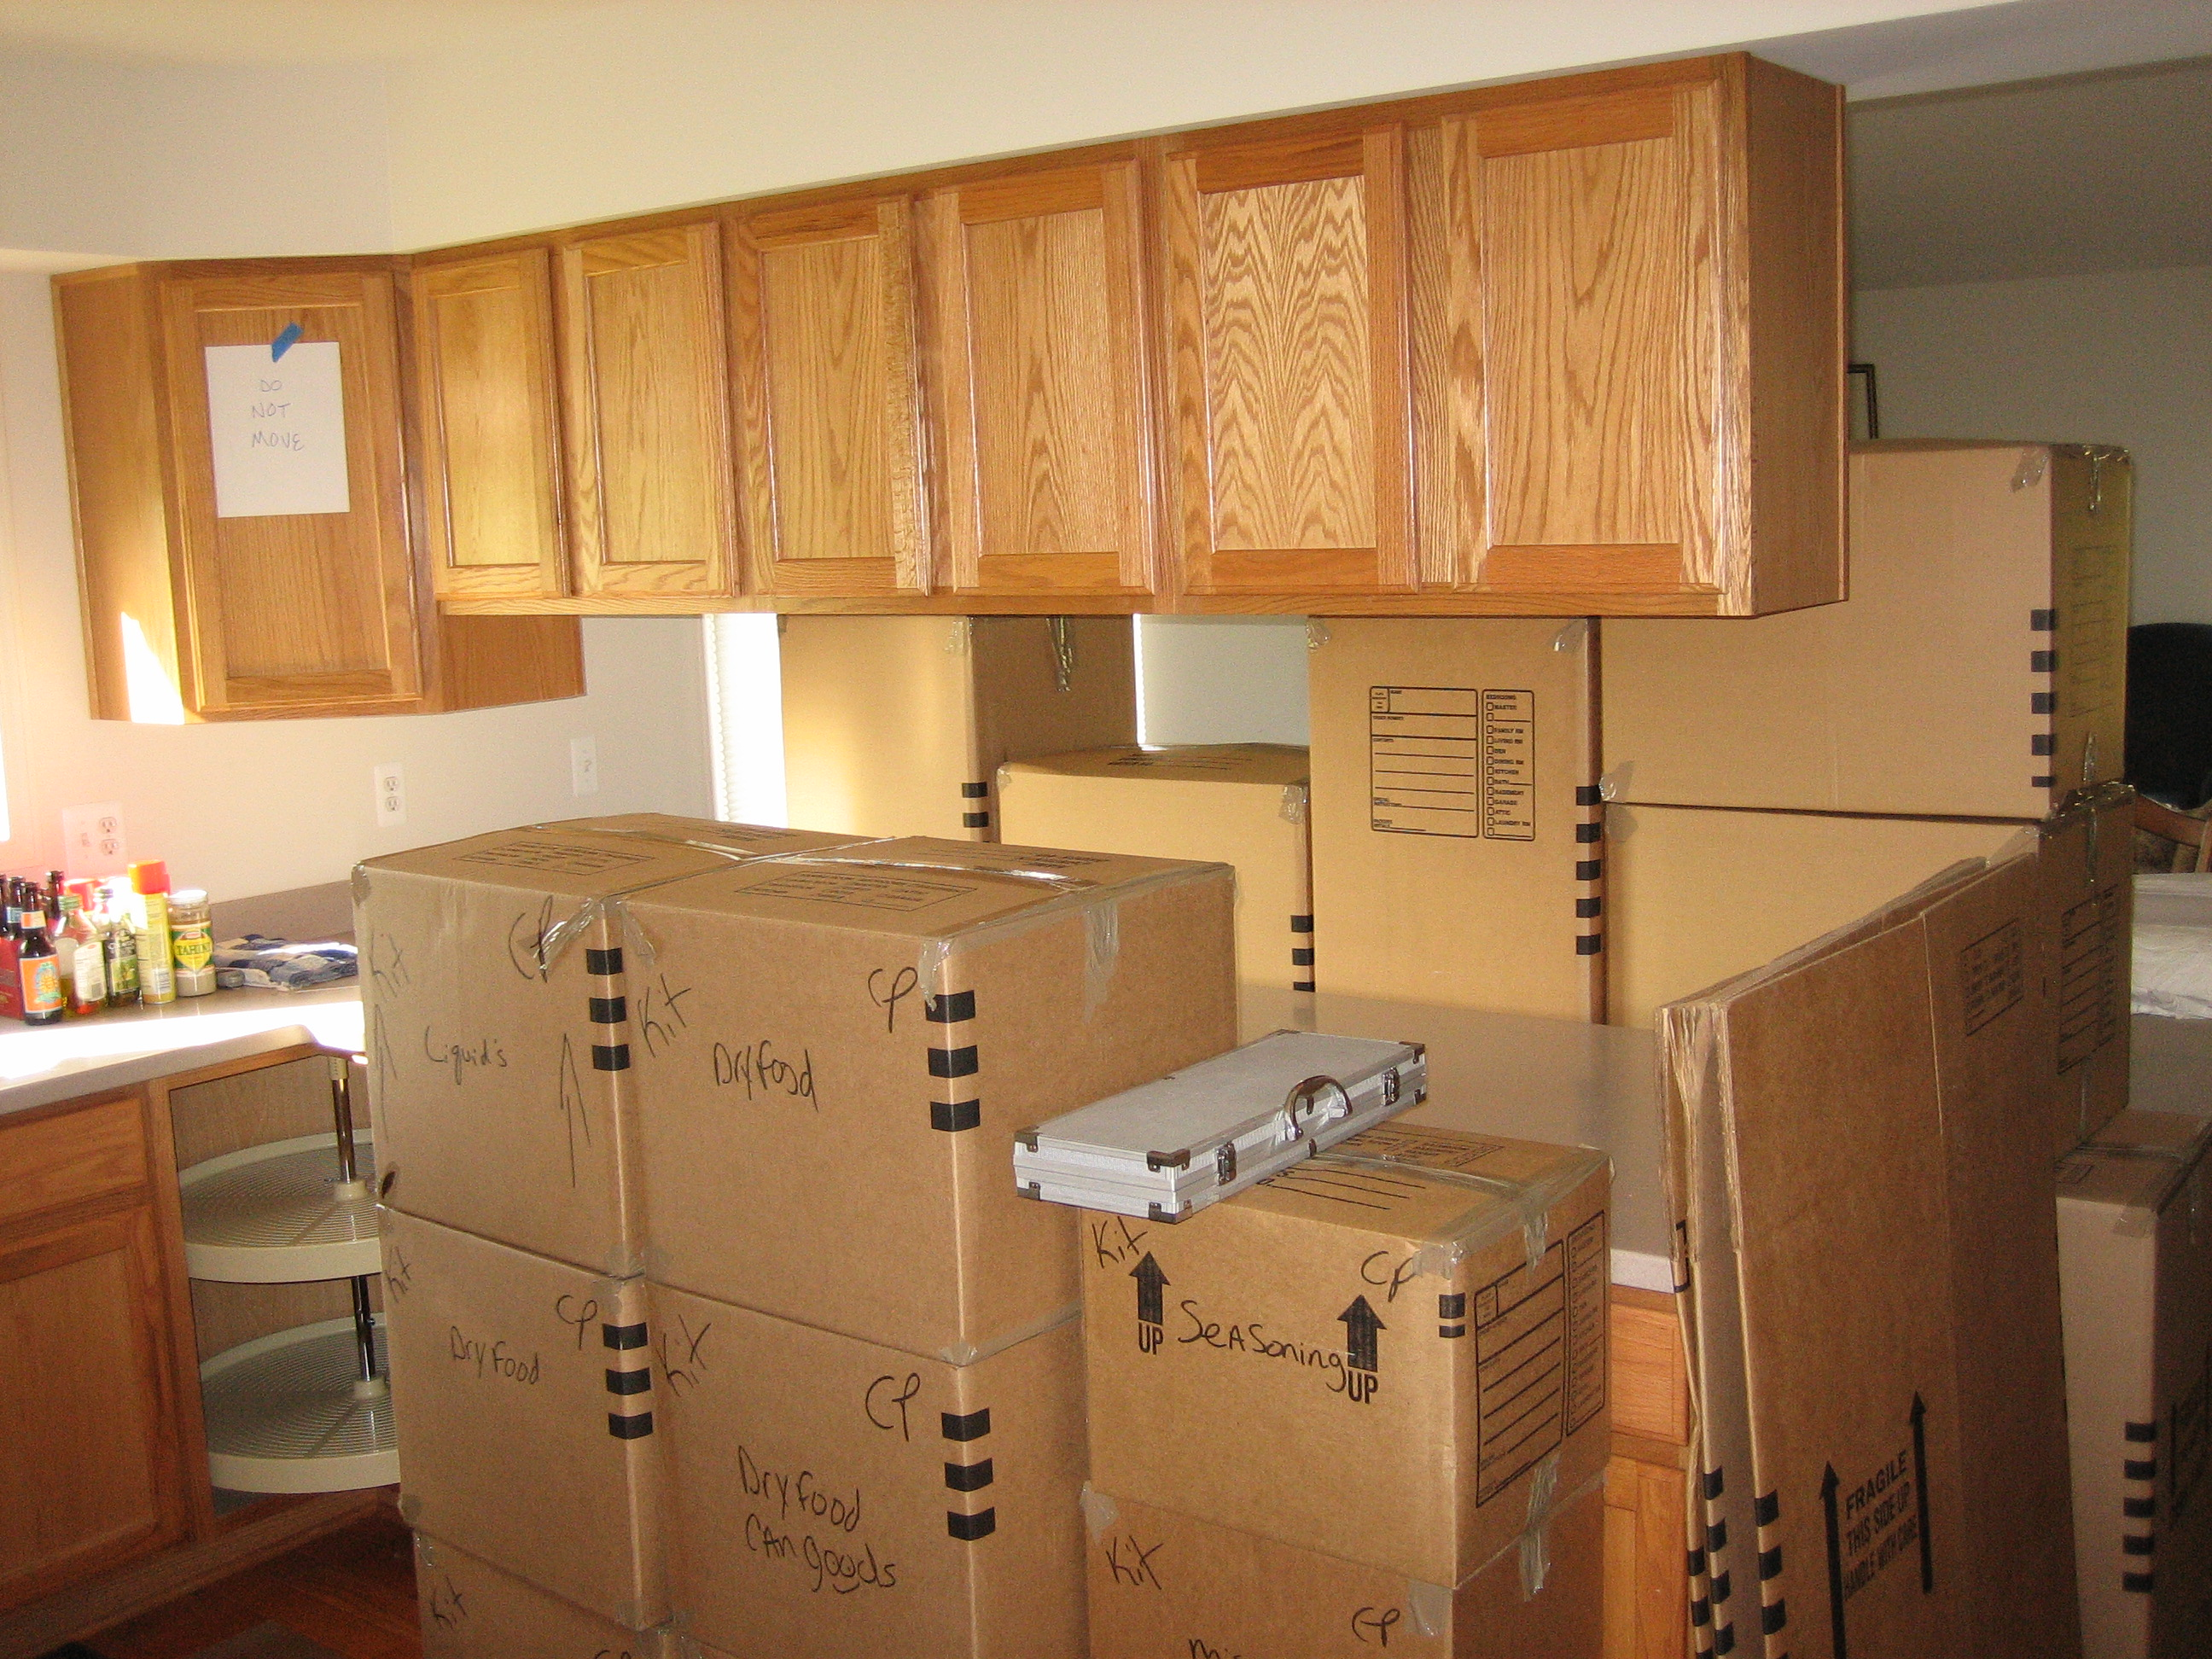 Boxes in the kitchen